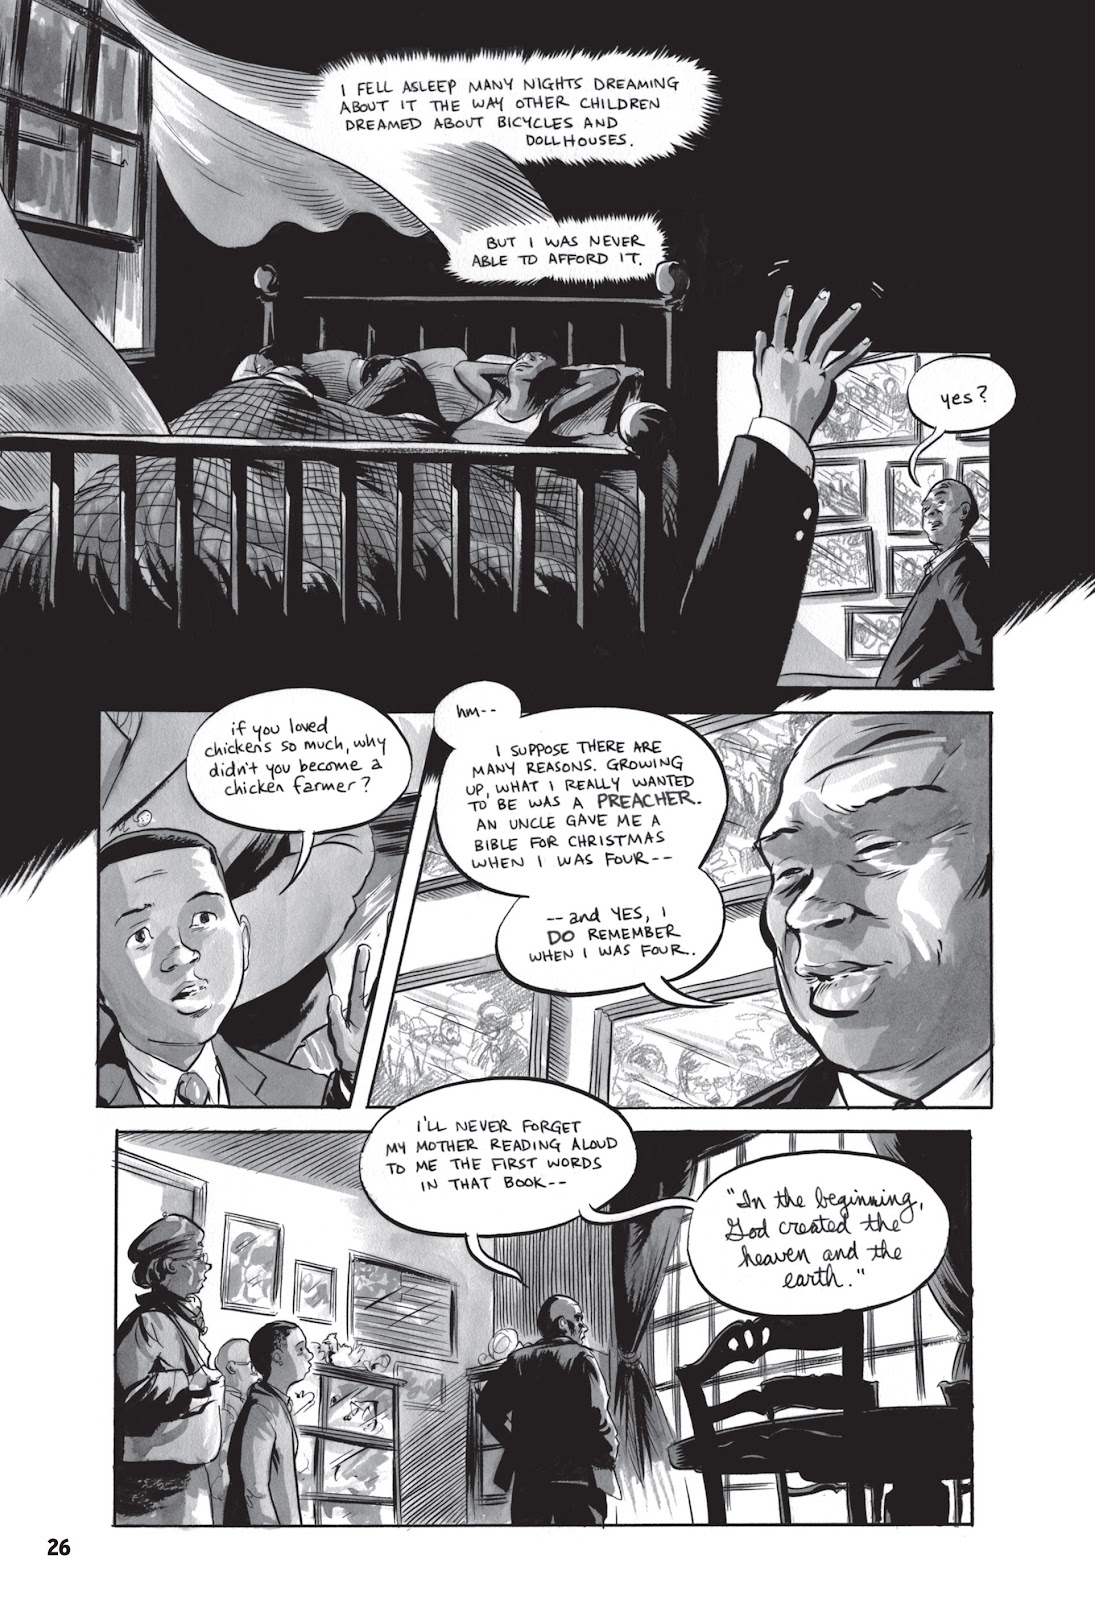 March 1 Page 23